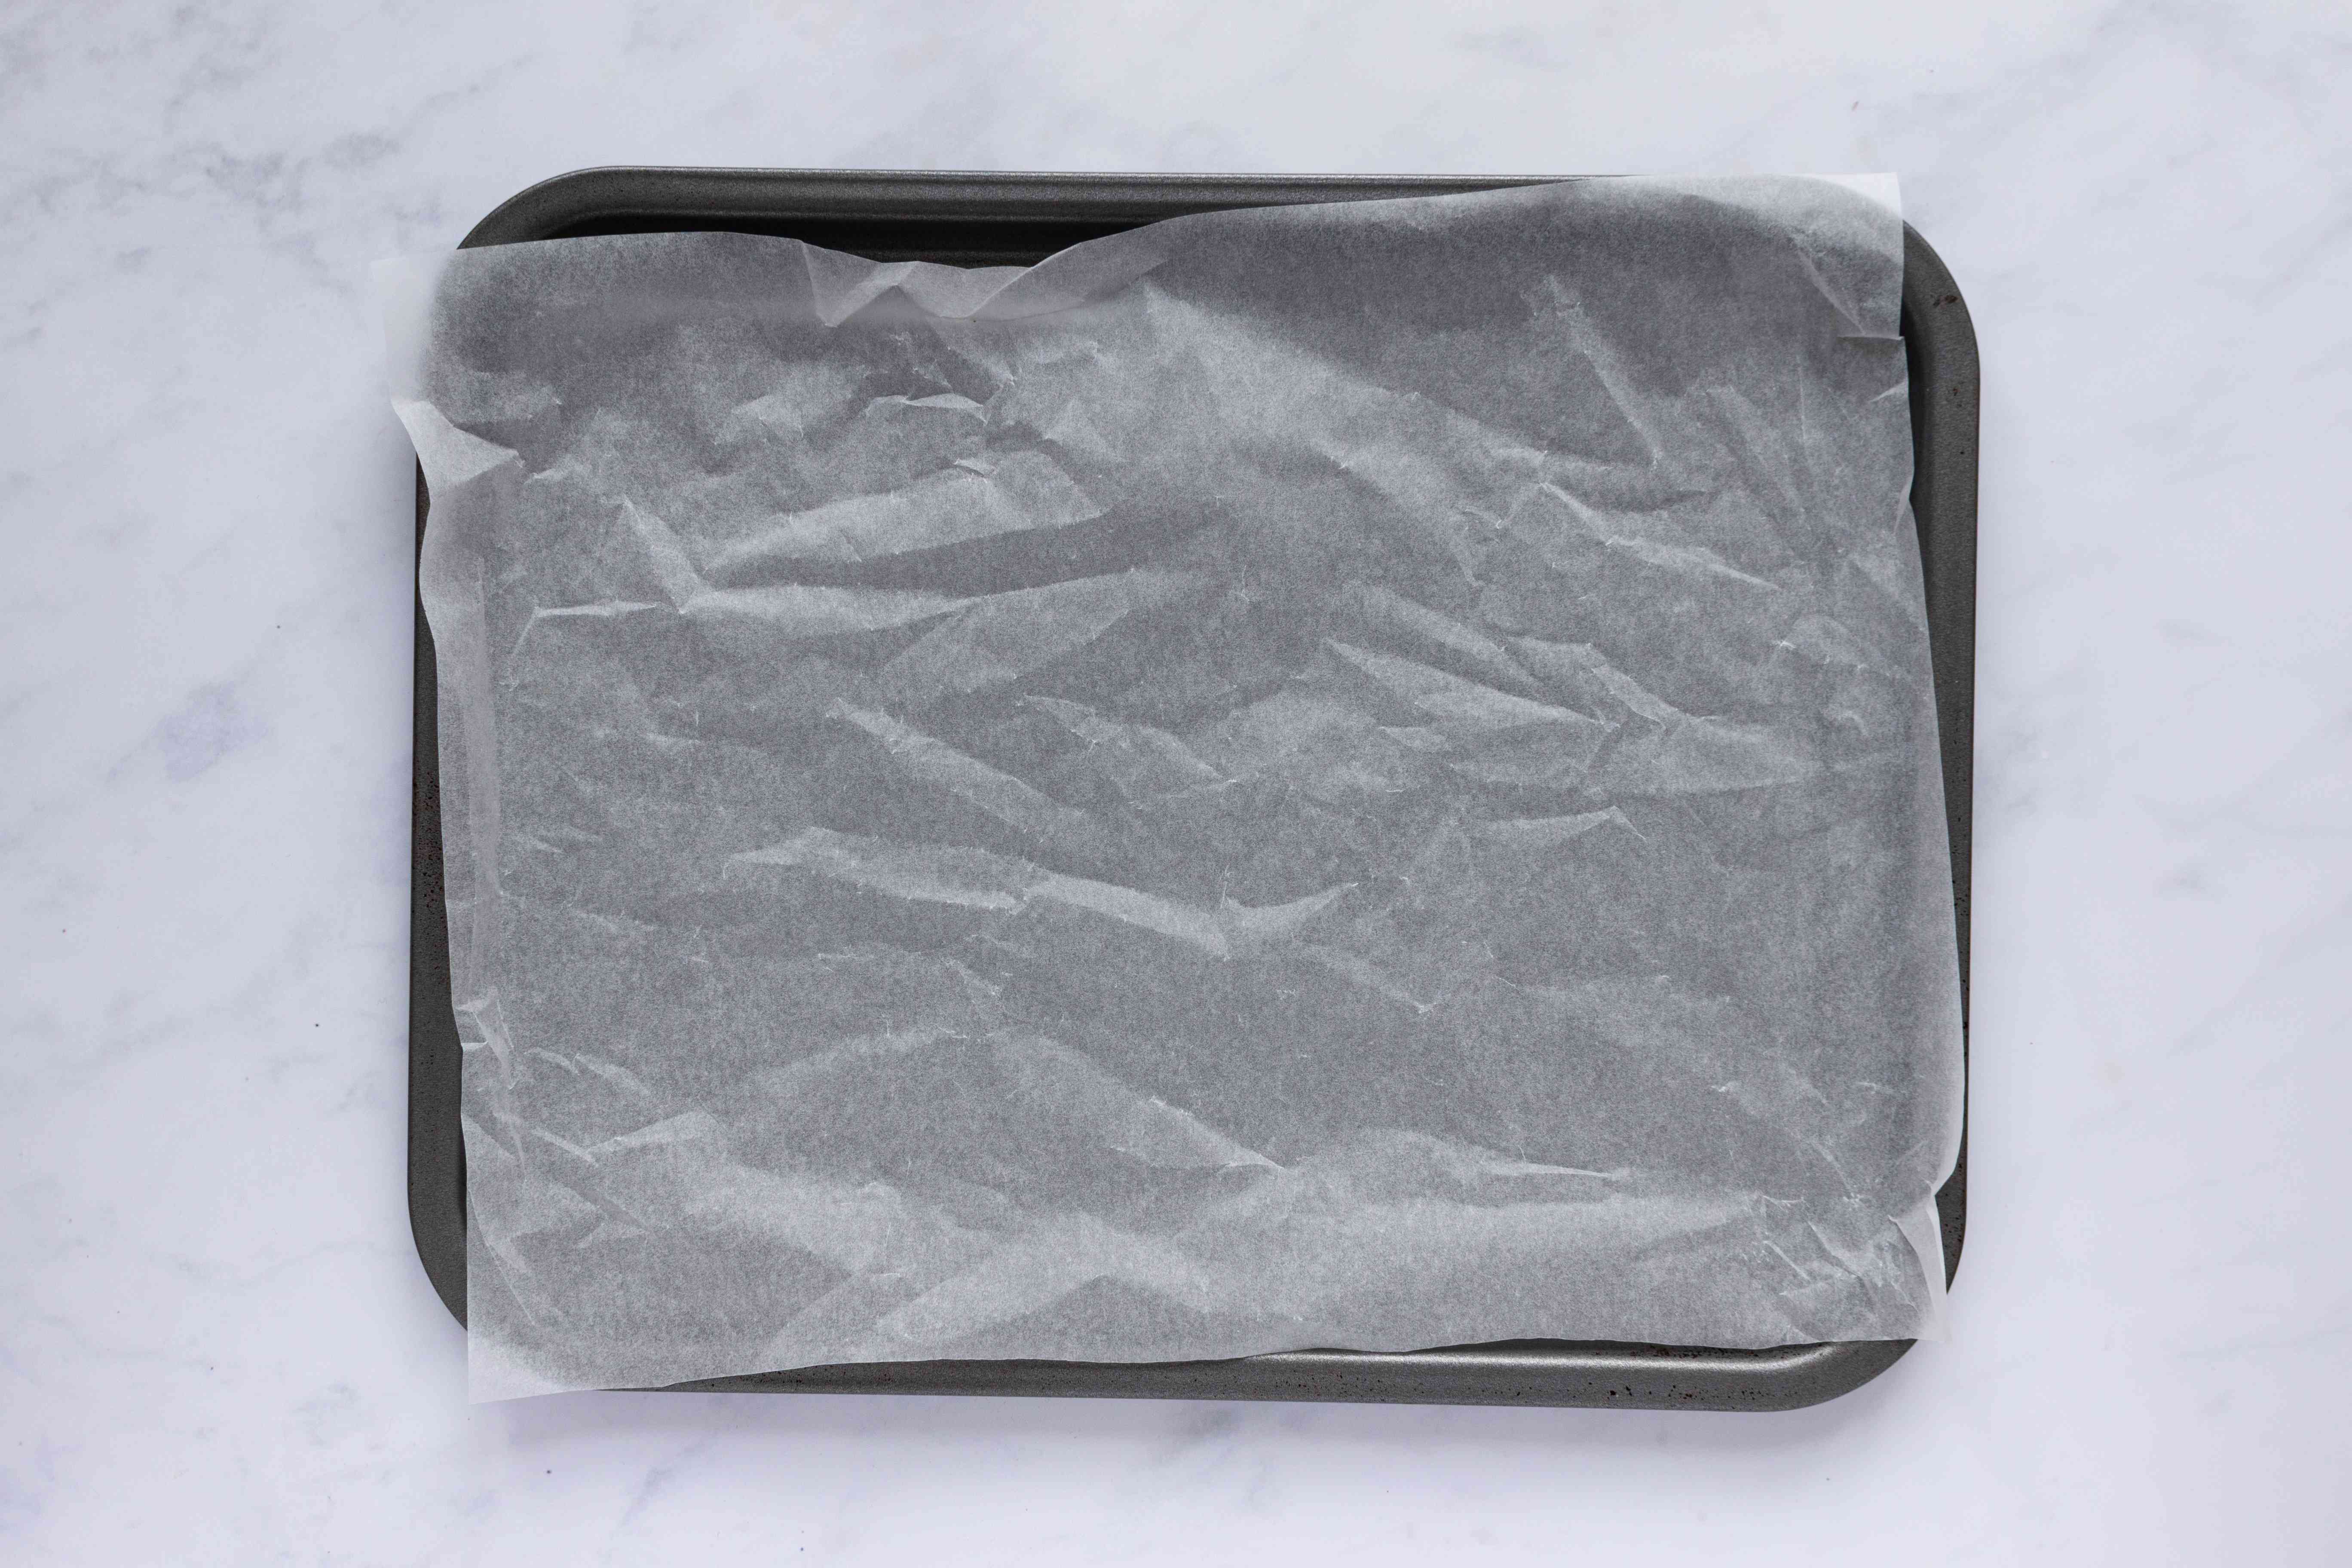 baking sheets with parchment paper